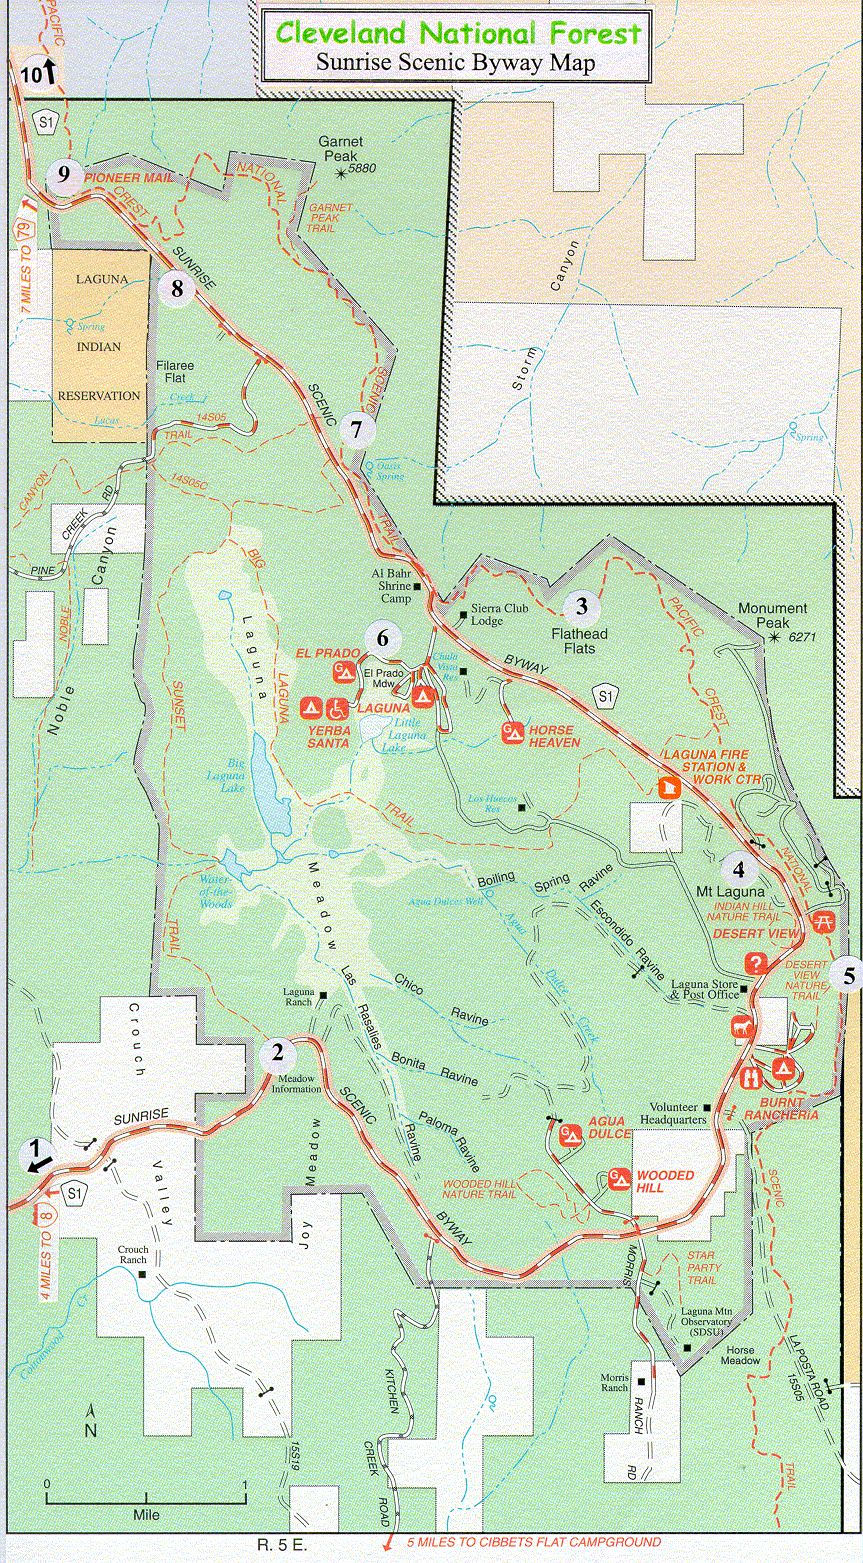 Map: A map showing the sunrise scenic byway.